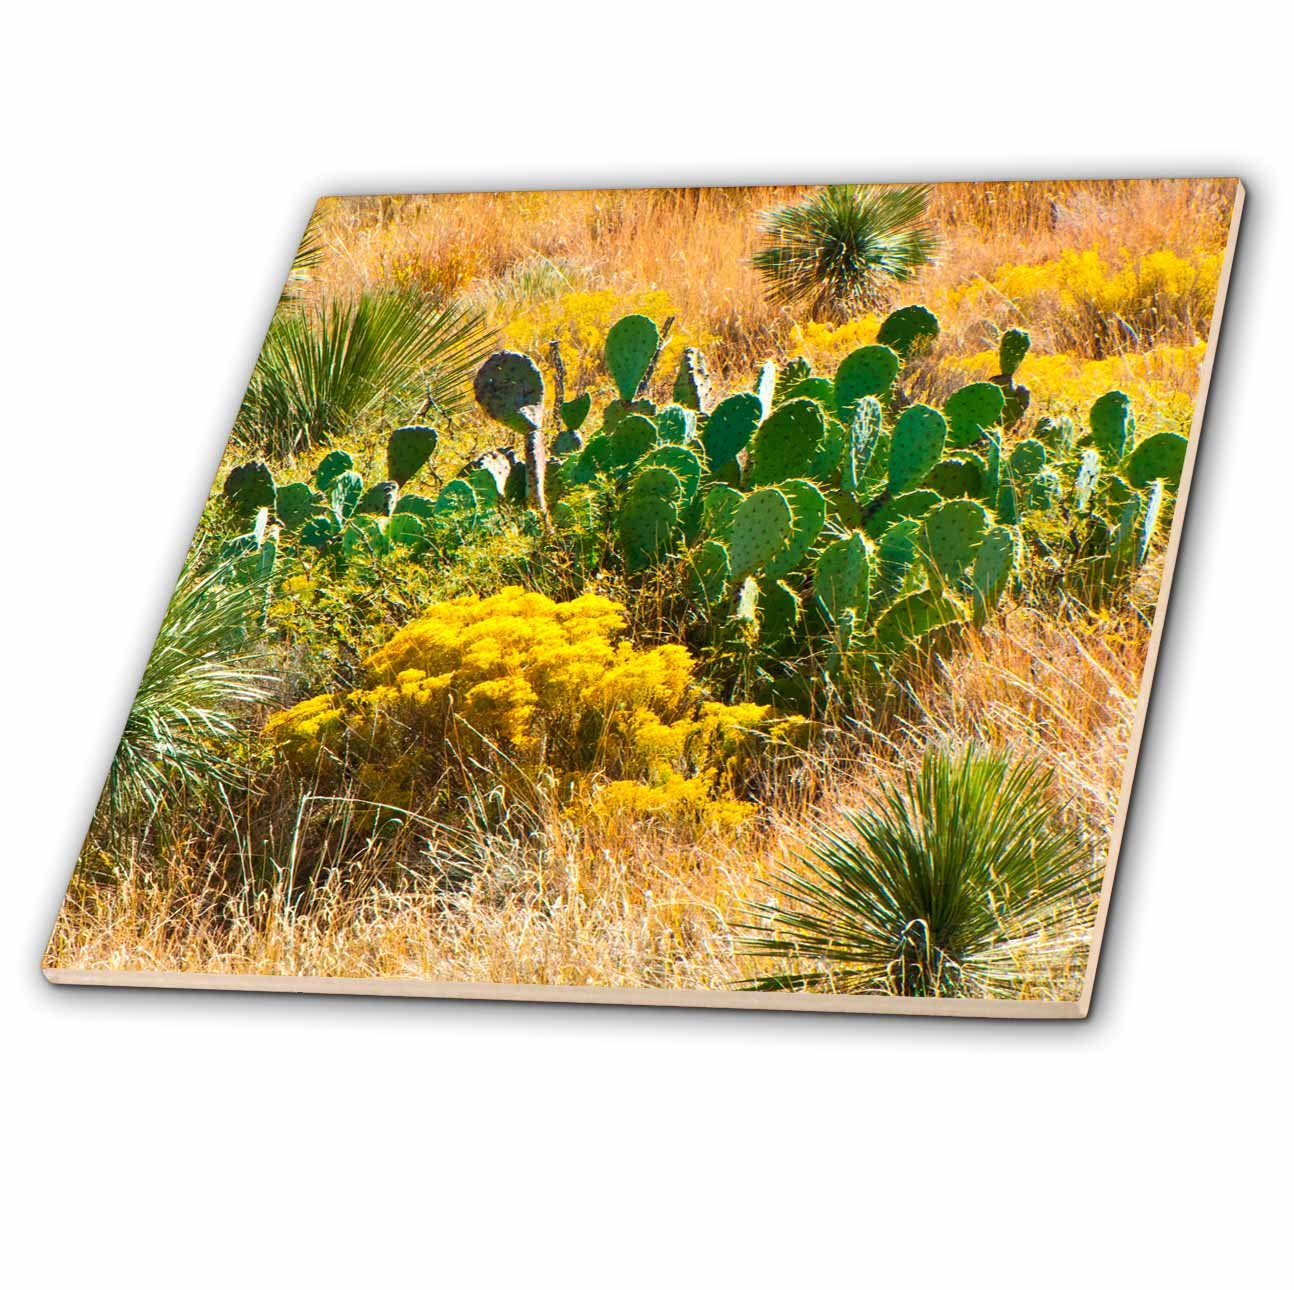 Texas 4-Inch - Ceramic Tile Guadalupe Mountain Np Prickly Pear Cactus ct/_208753/_1 3dRose USA